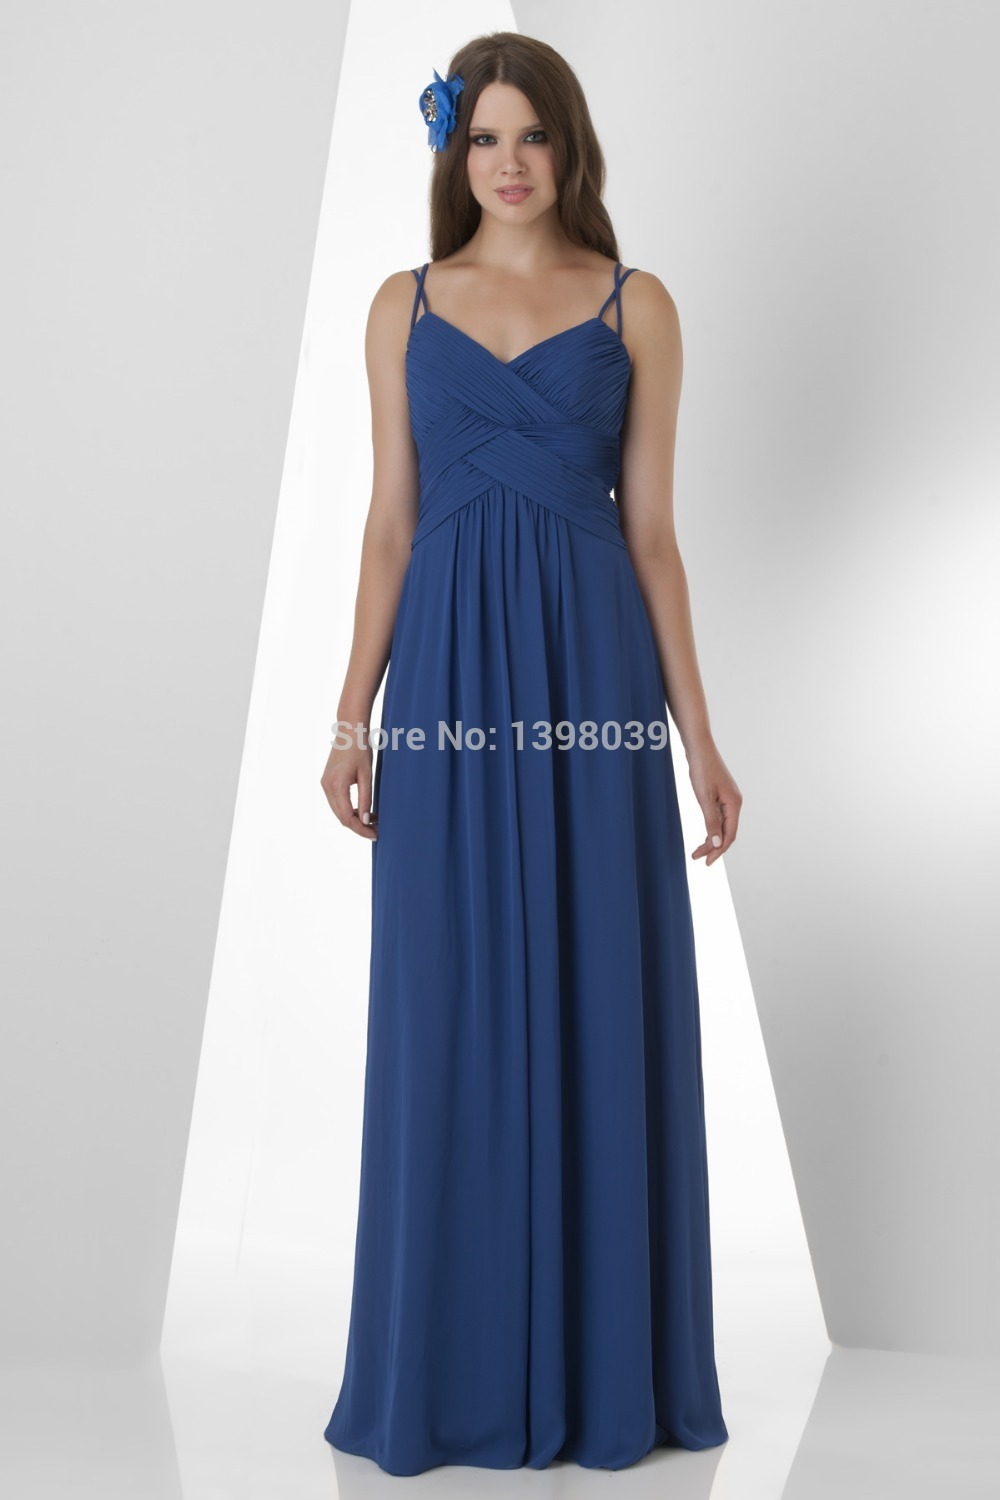 Aliexpress.com : Buy Spaghetti Straps Royal Blue Chiffon Bridesmaid Dresses 2014 Long Elegant Formal Dress Gowns from Reliable dress slip suppliers on Silence Angle